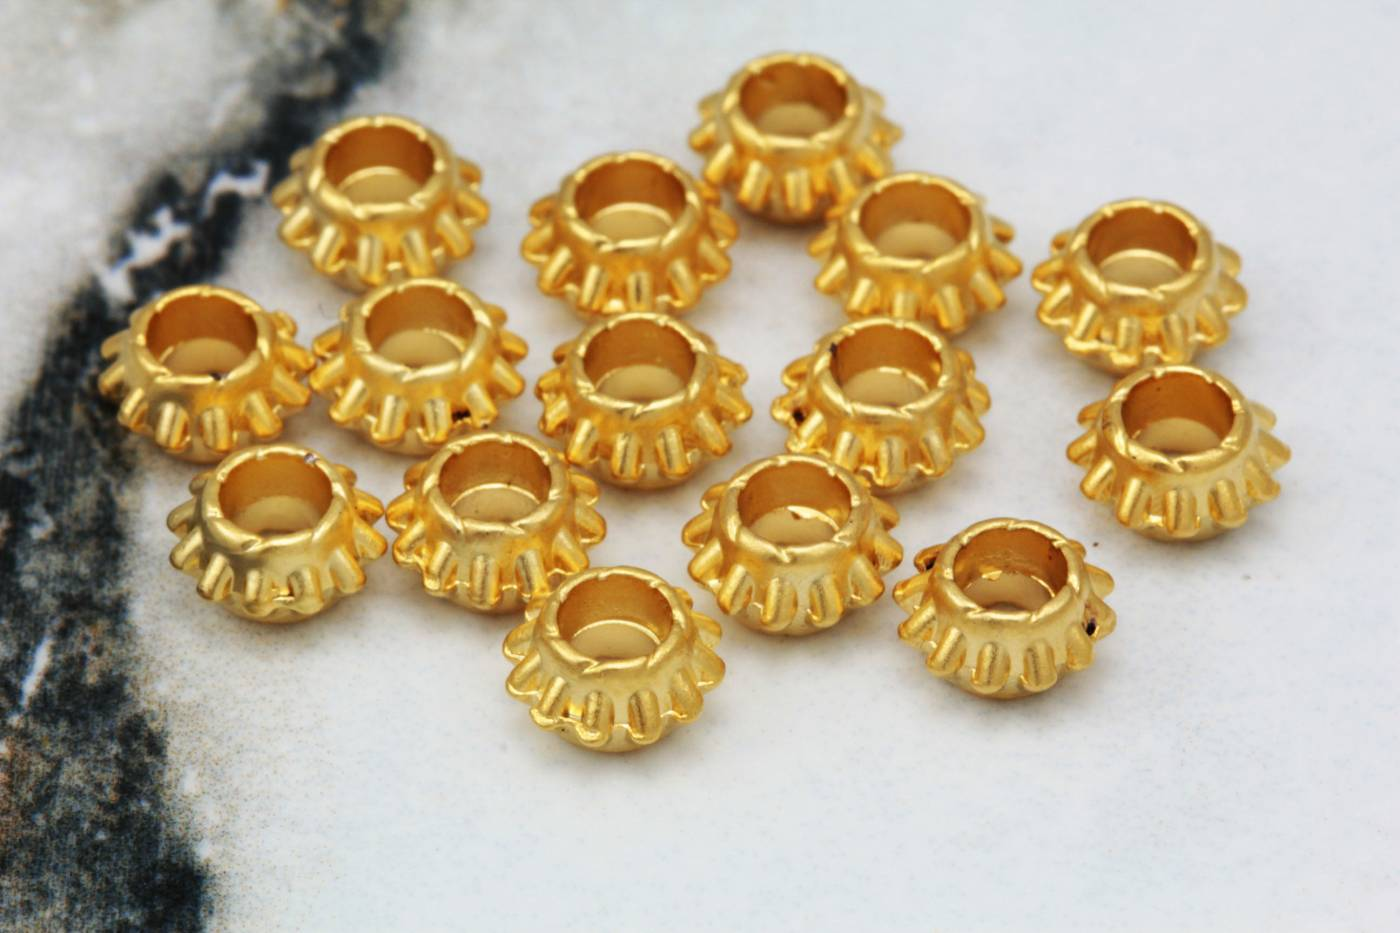 gold-metal-spacer-findigs-online-shop.jpg